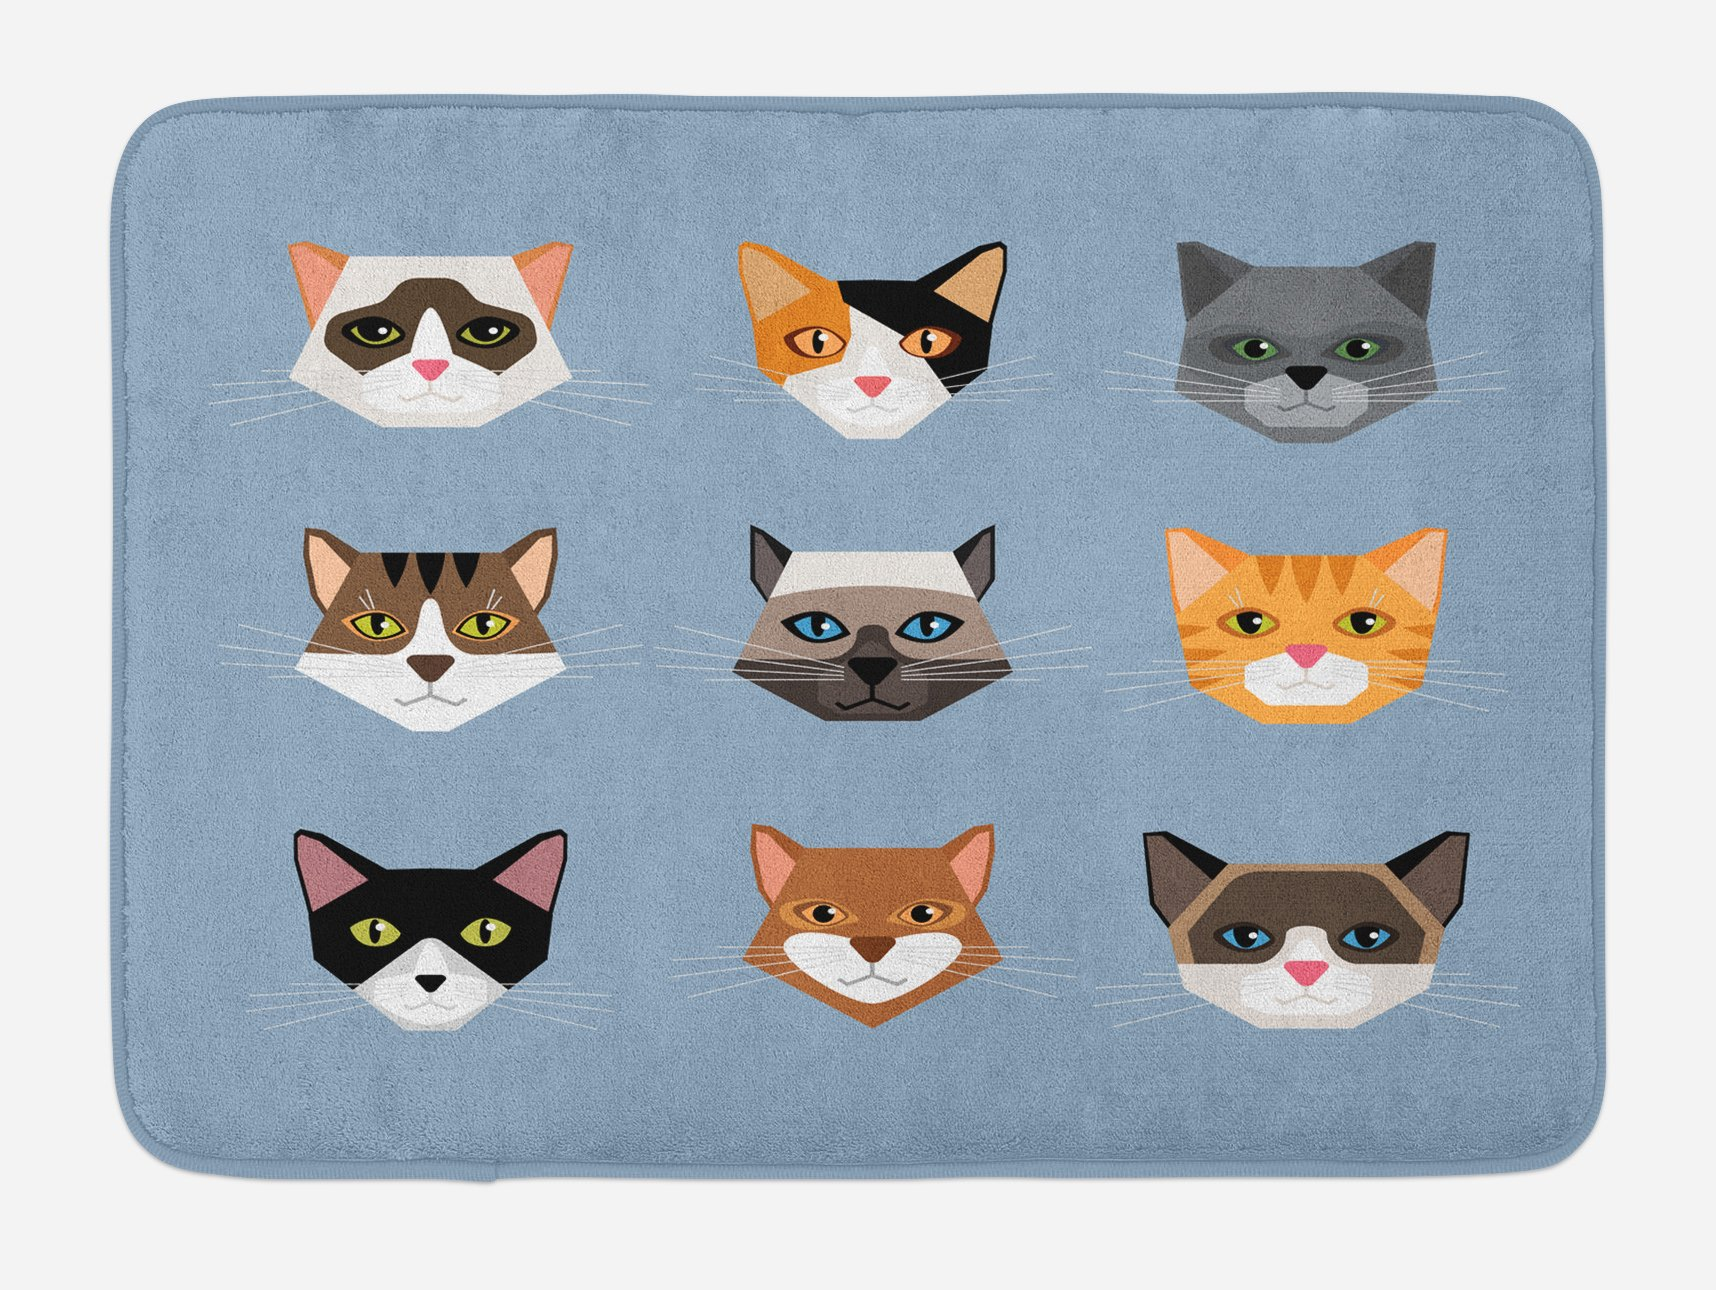 Ambesonne Cat Bath Mat, Animal Portrait Set with Cute Kittens Face Whiskers Contemporary Caricature Pattern, Plush Bathroom Decor Mat with Non Slip Backing, 29.5 W X 17.5 W Inches, Multicolor